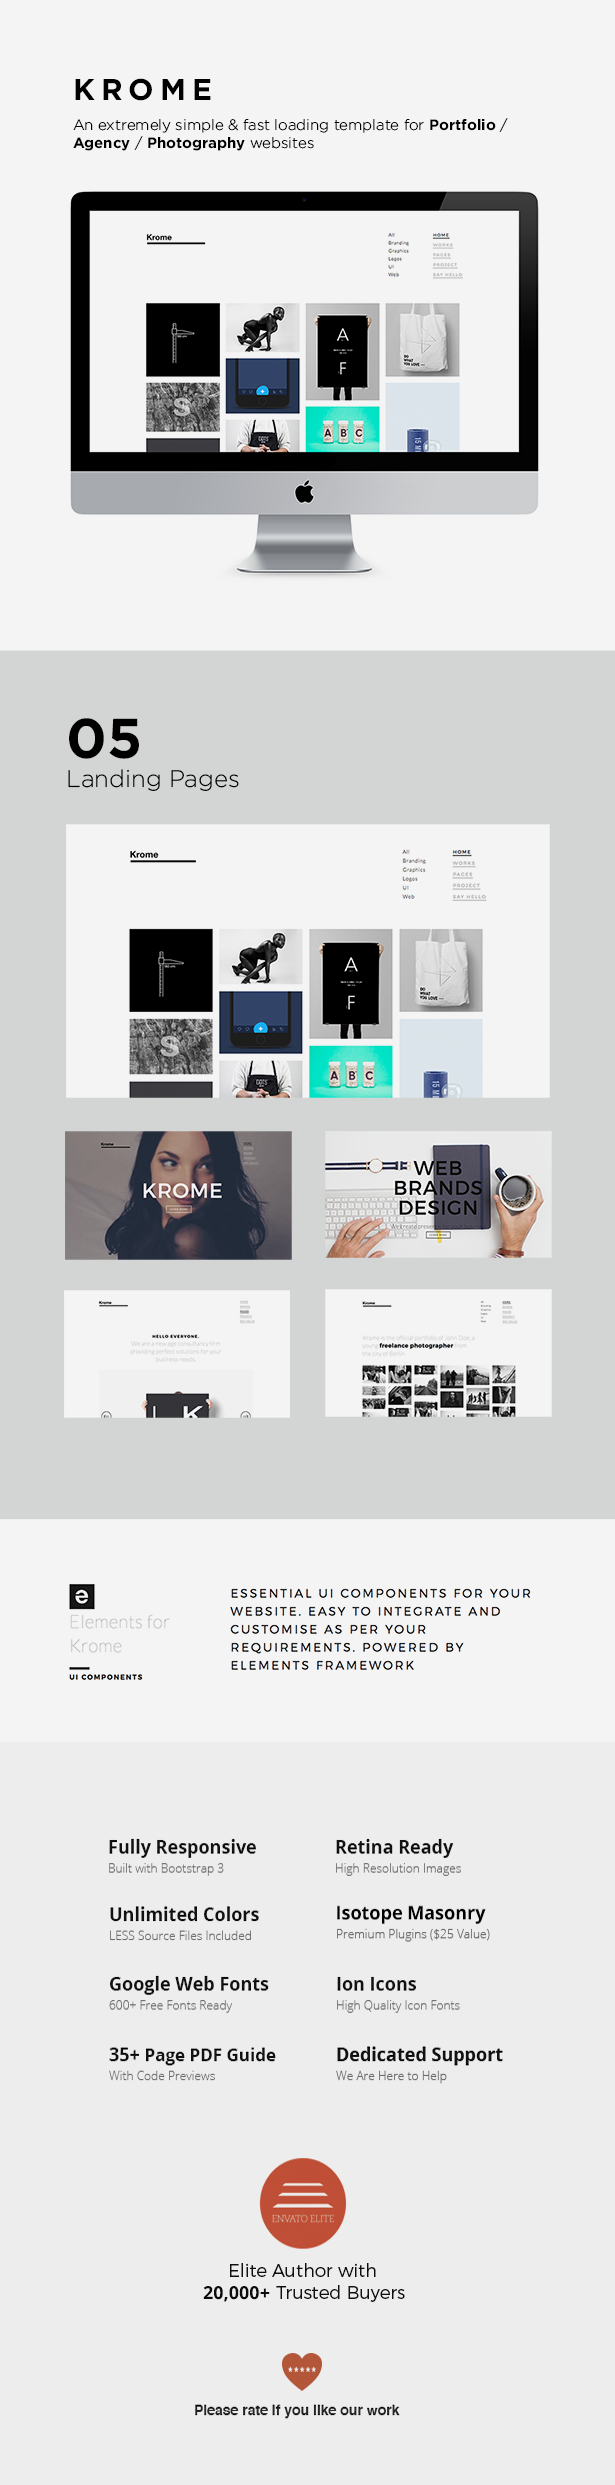 KROME - Pure & Minimal Creative Portfolio / Agency / Photography ...